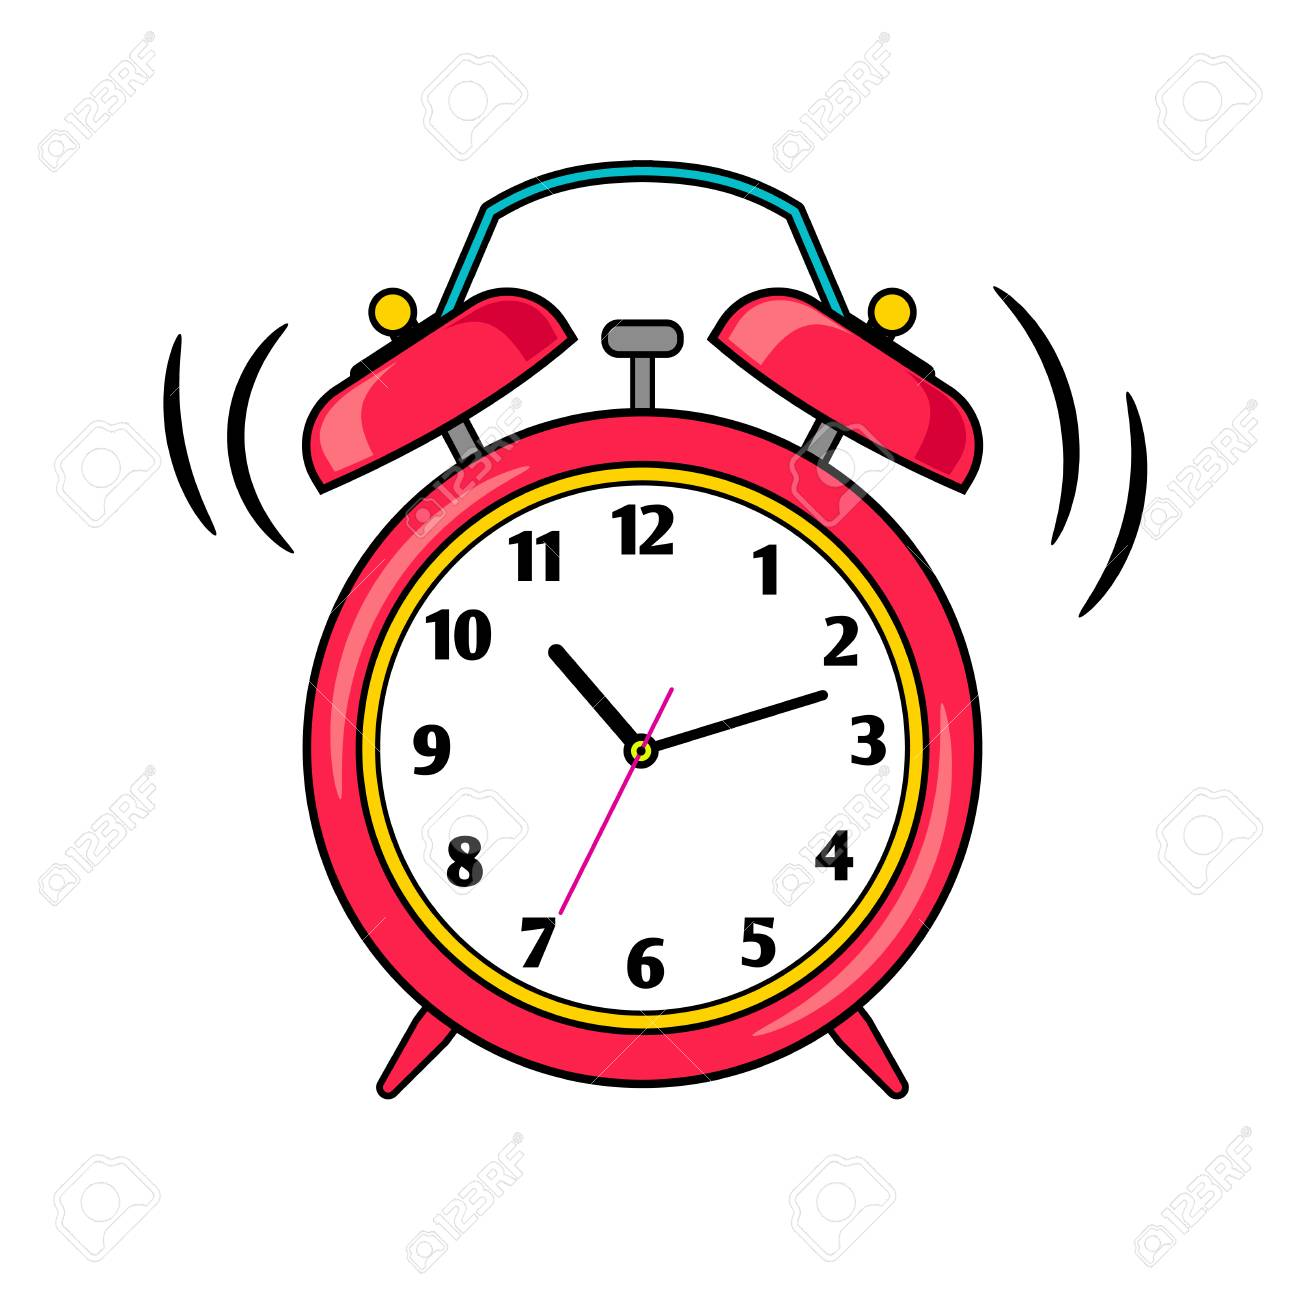 Image result for alrm clock clipart